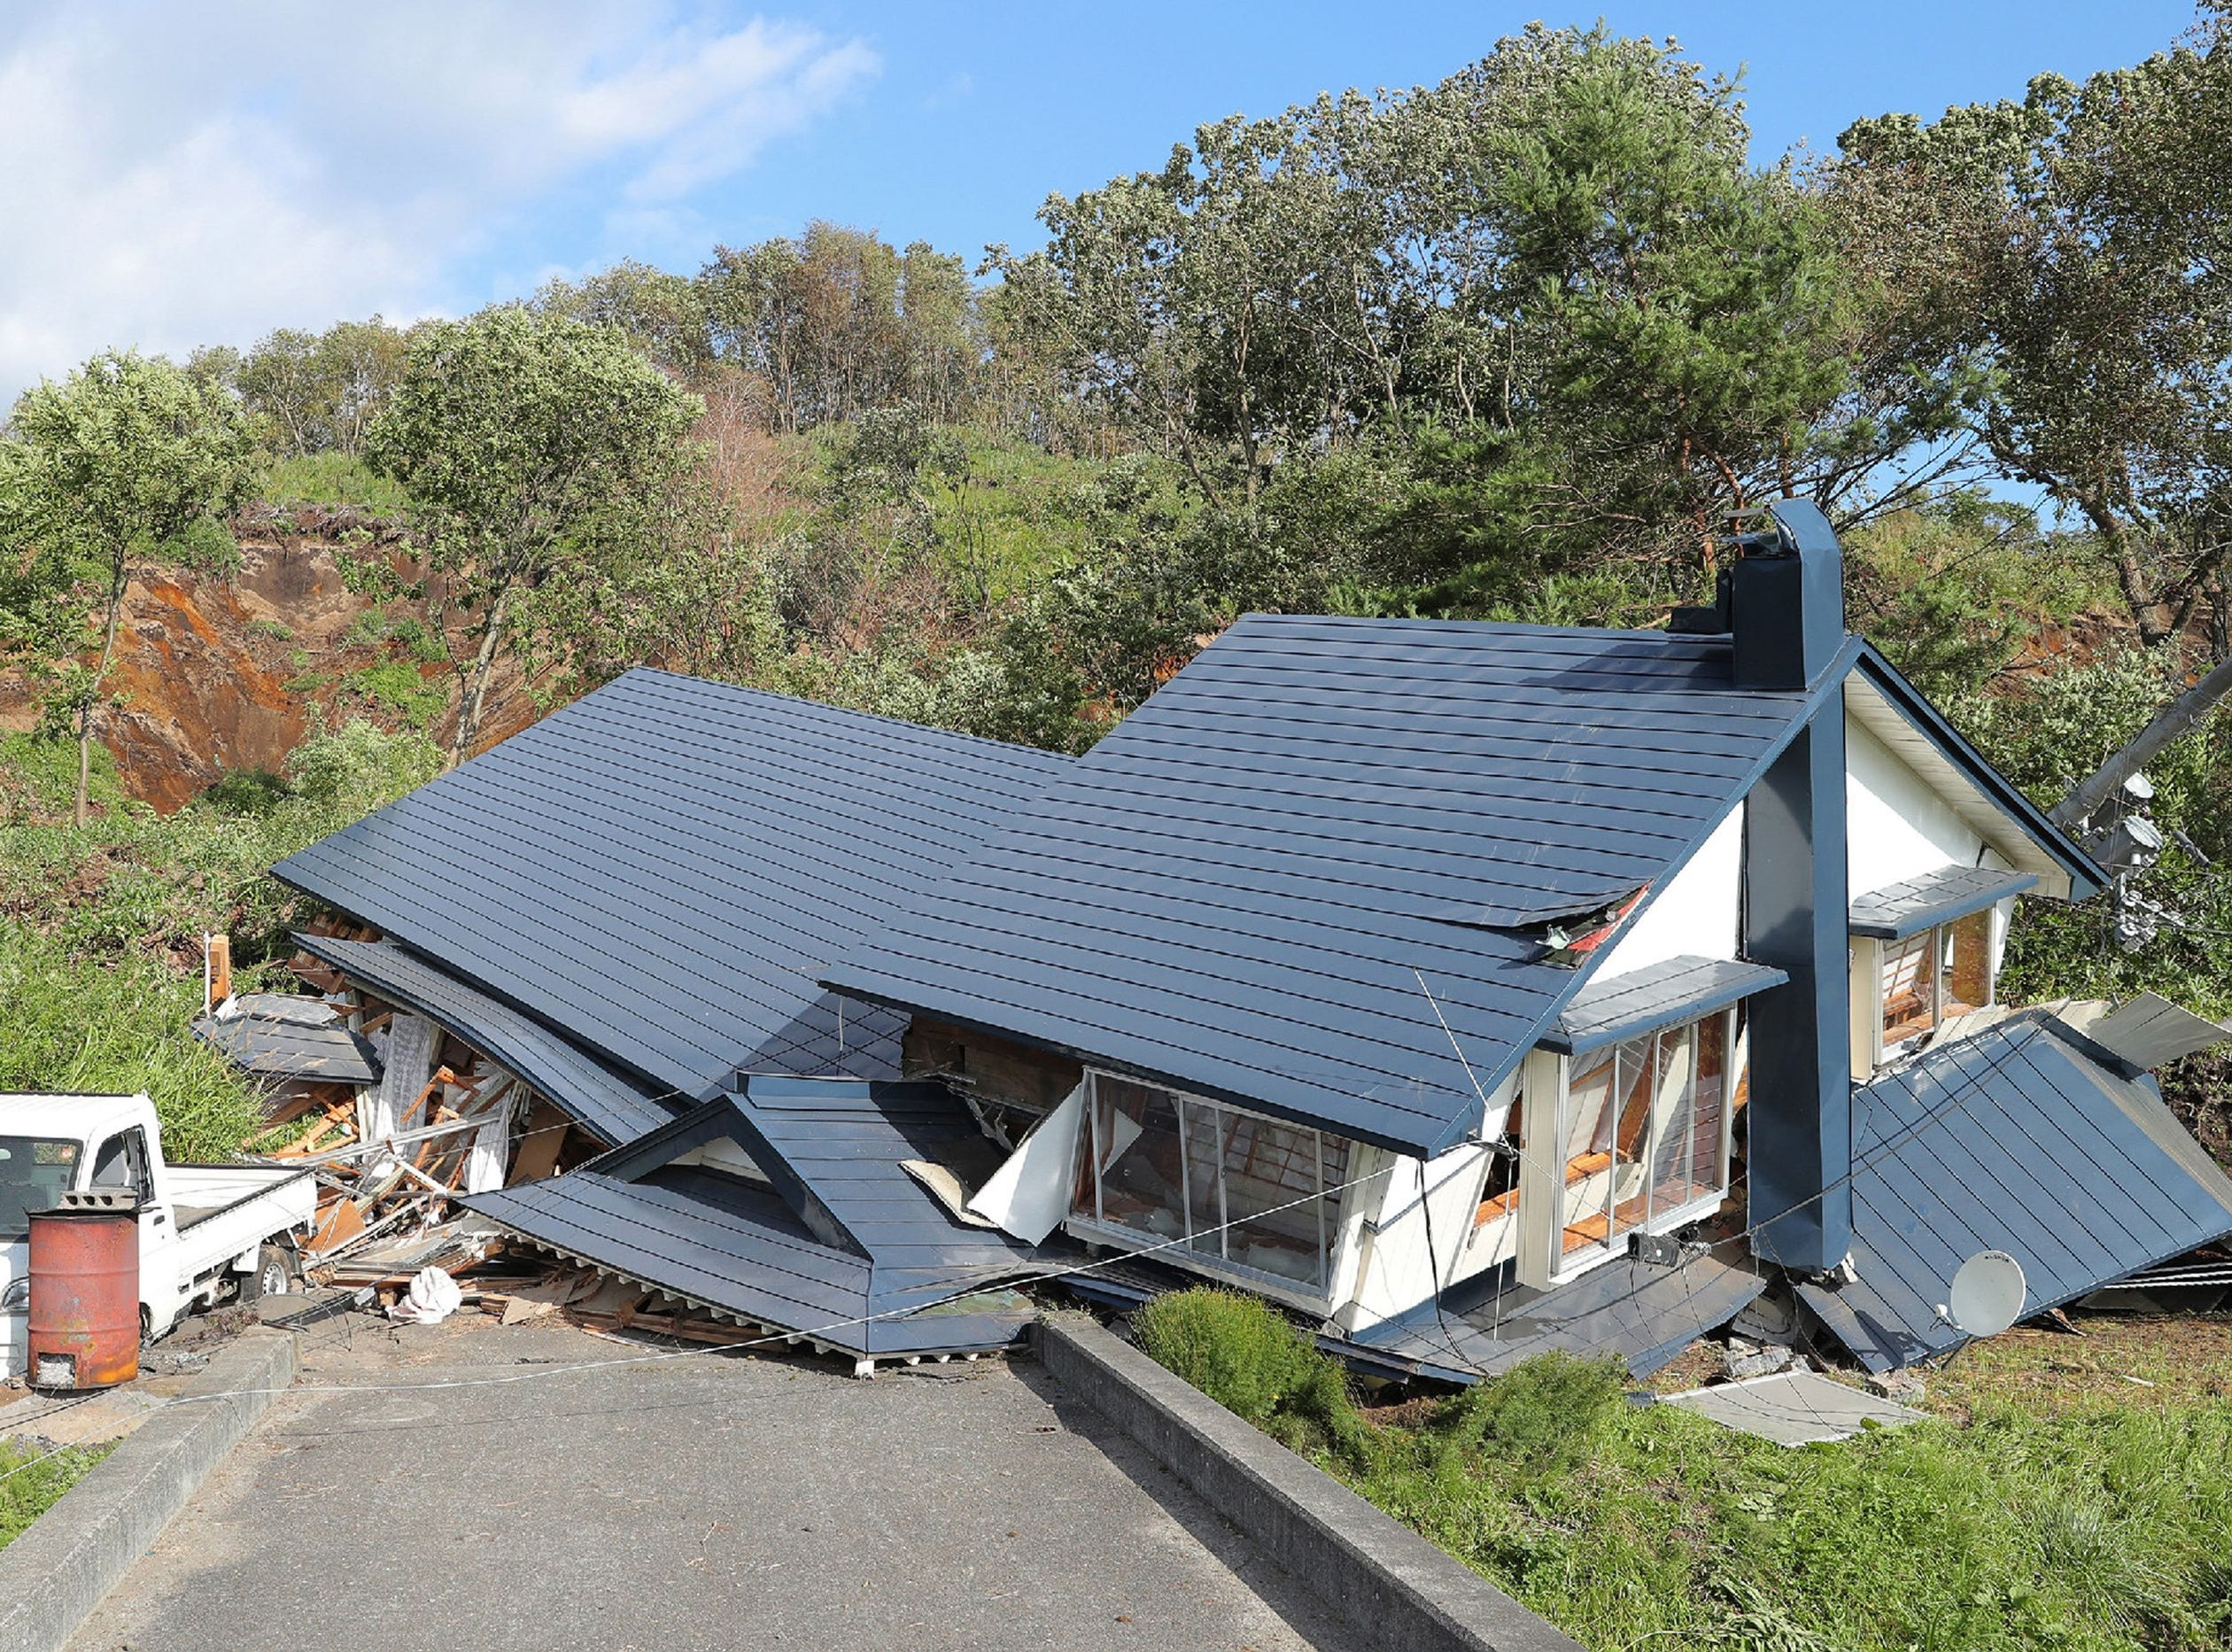 A house damaged by a landslide caused by an earthquake is seen in Atsuma in Hokkaido prefecture on Sept. 6, 2018.